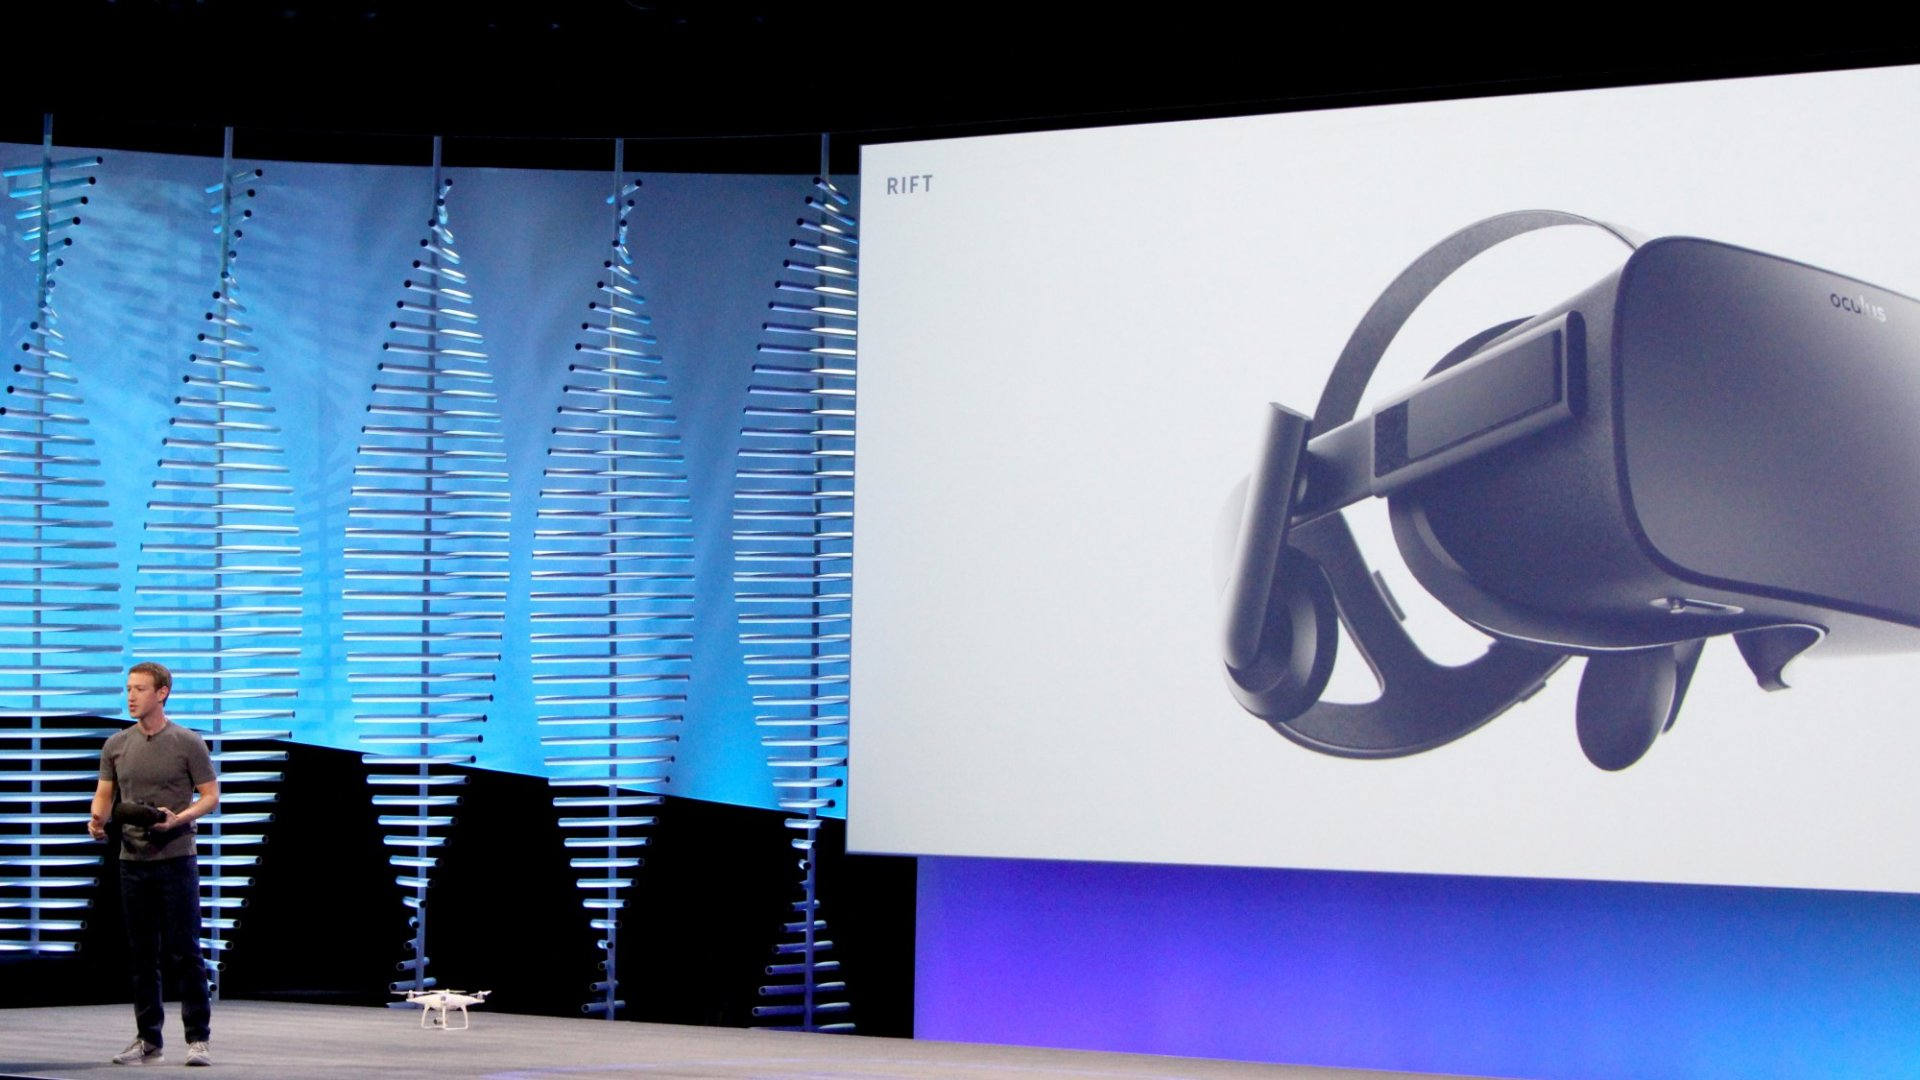 Facebook chief Mark Zuckerberg uses a small drone and an Oculus Rift VR headset during a keynote at the social network's headquarters in San Francisco in April 2016.